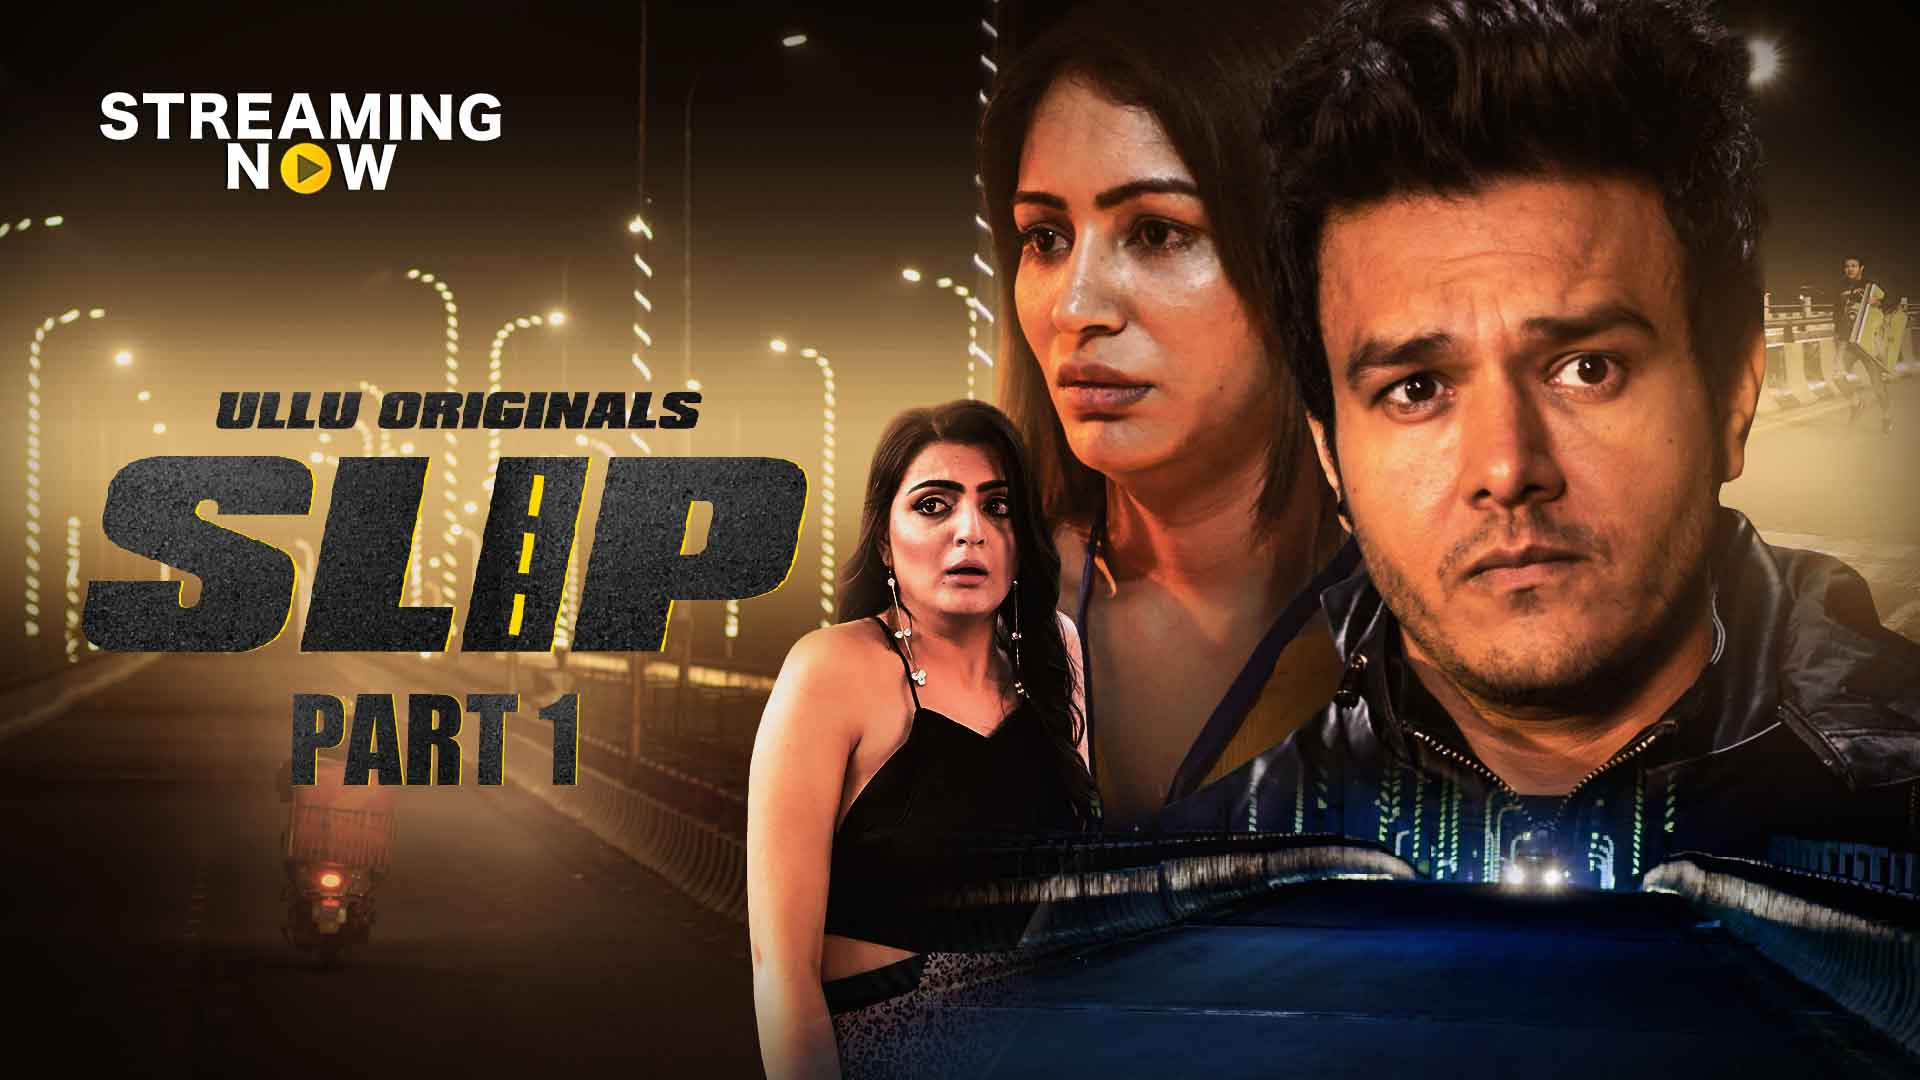 Slip Part 1 2020 S01 Hindi Ullu Originals Complete Web Series 720p HDRip 380MB Download